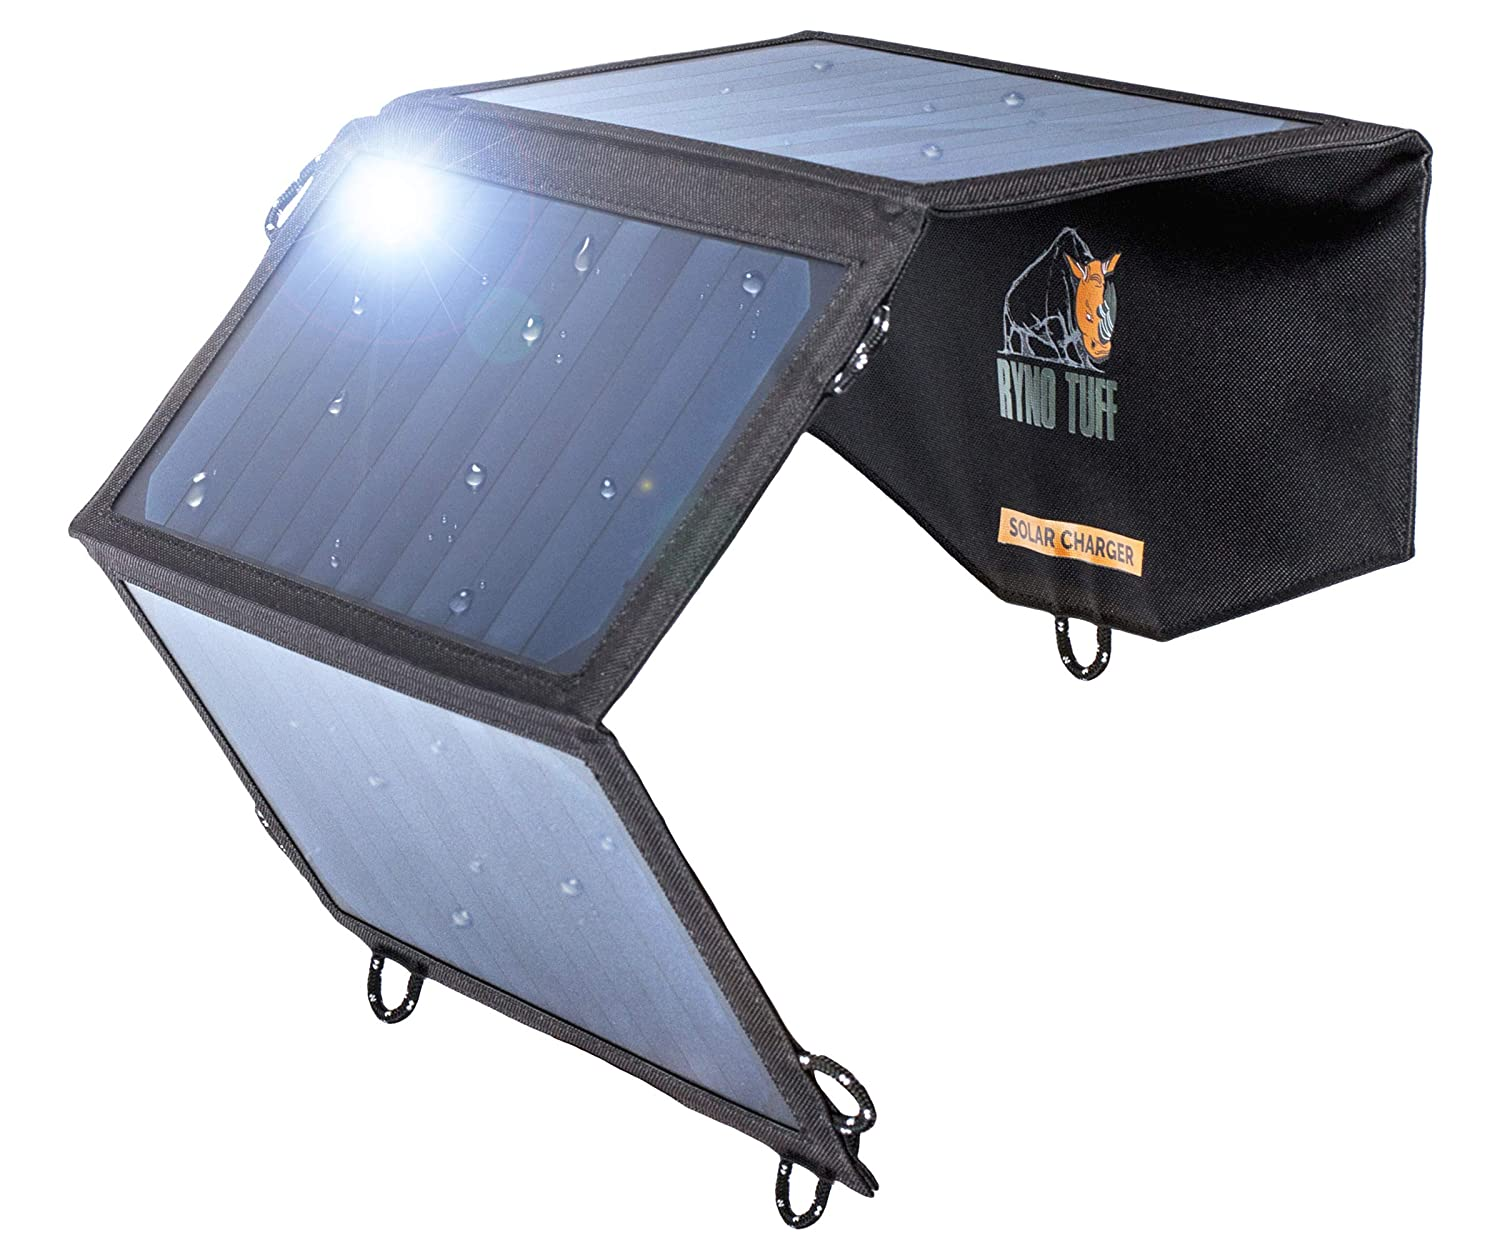 Ryno Tuff Solar Charger 21W Dual USB Best Portable Battery Charger